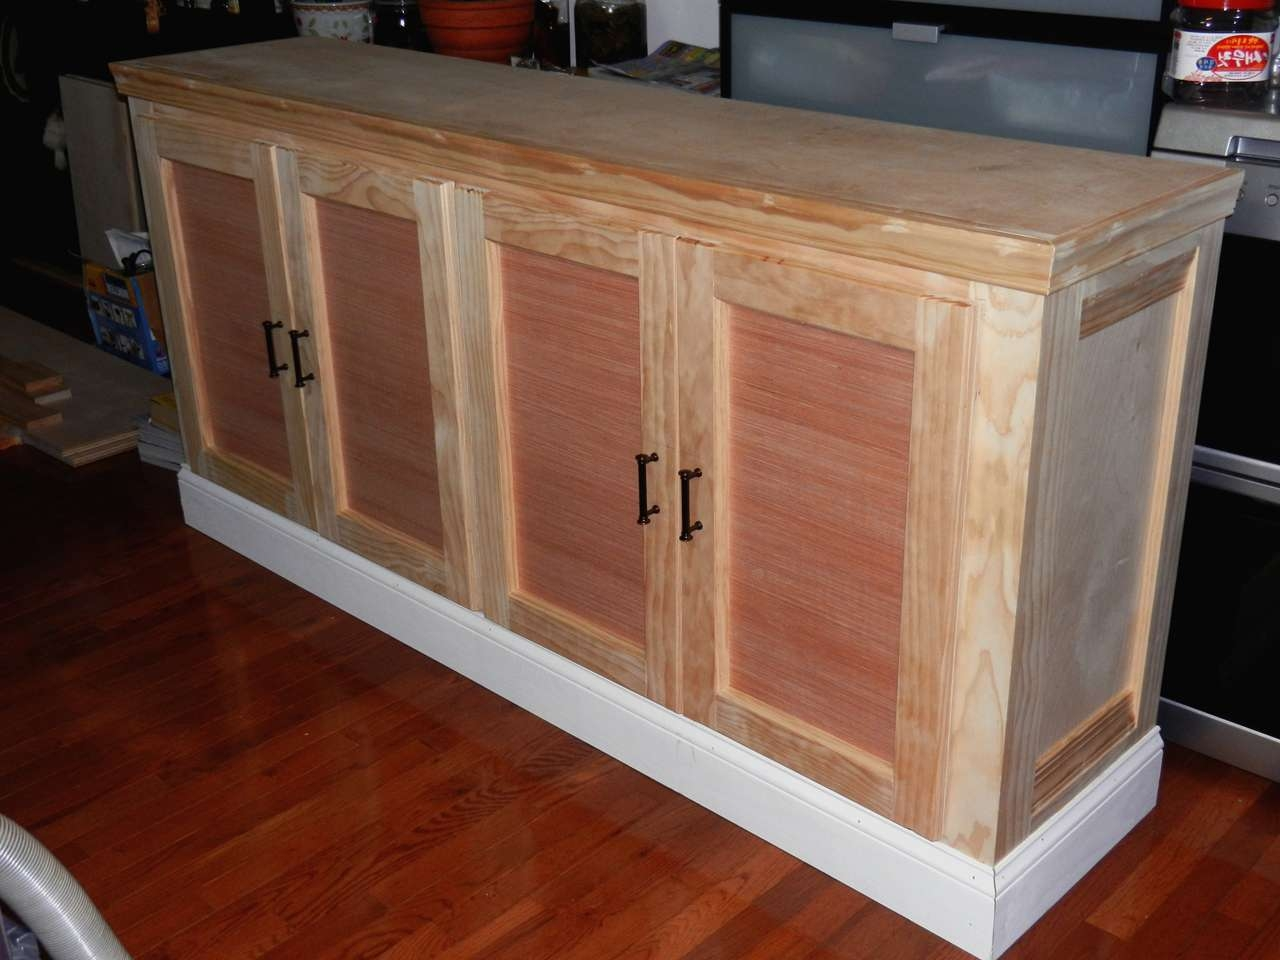 Ana White | Shanty Sideboard And Hutch – First Build – Diy Projects Throughout Unfinished Sideboards (View 16 of 20)